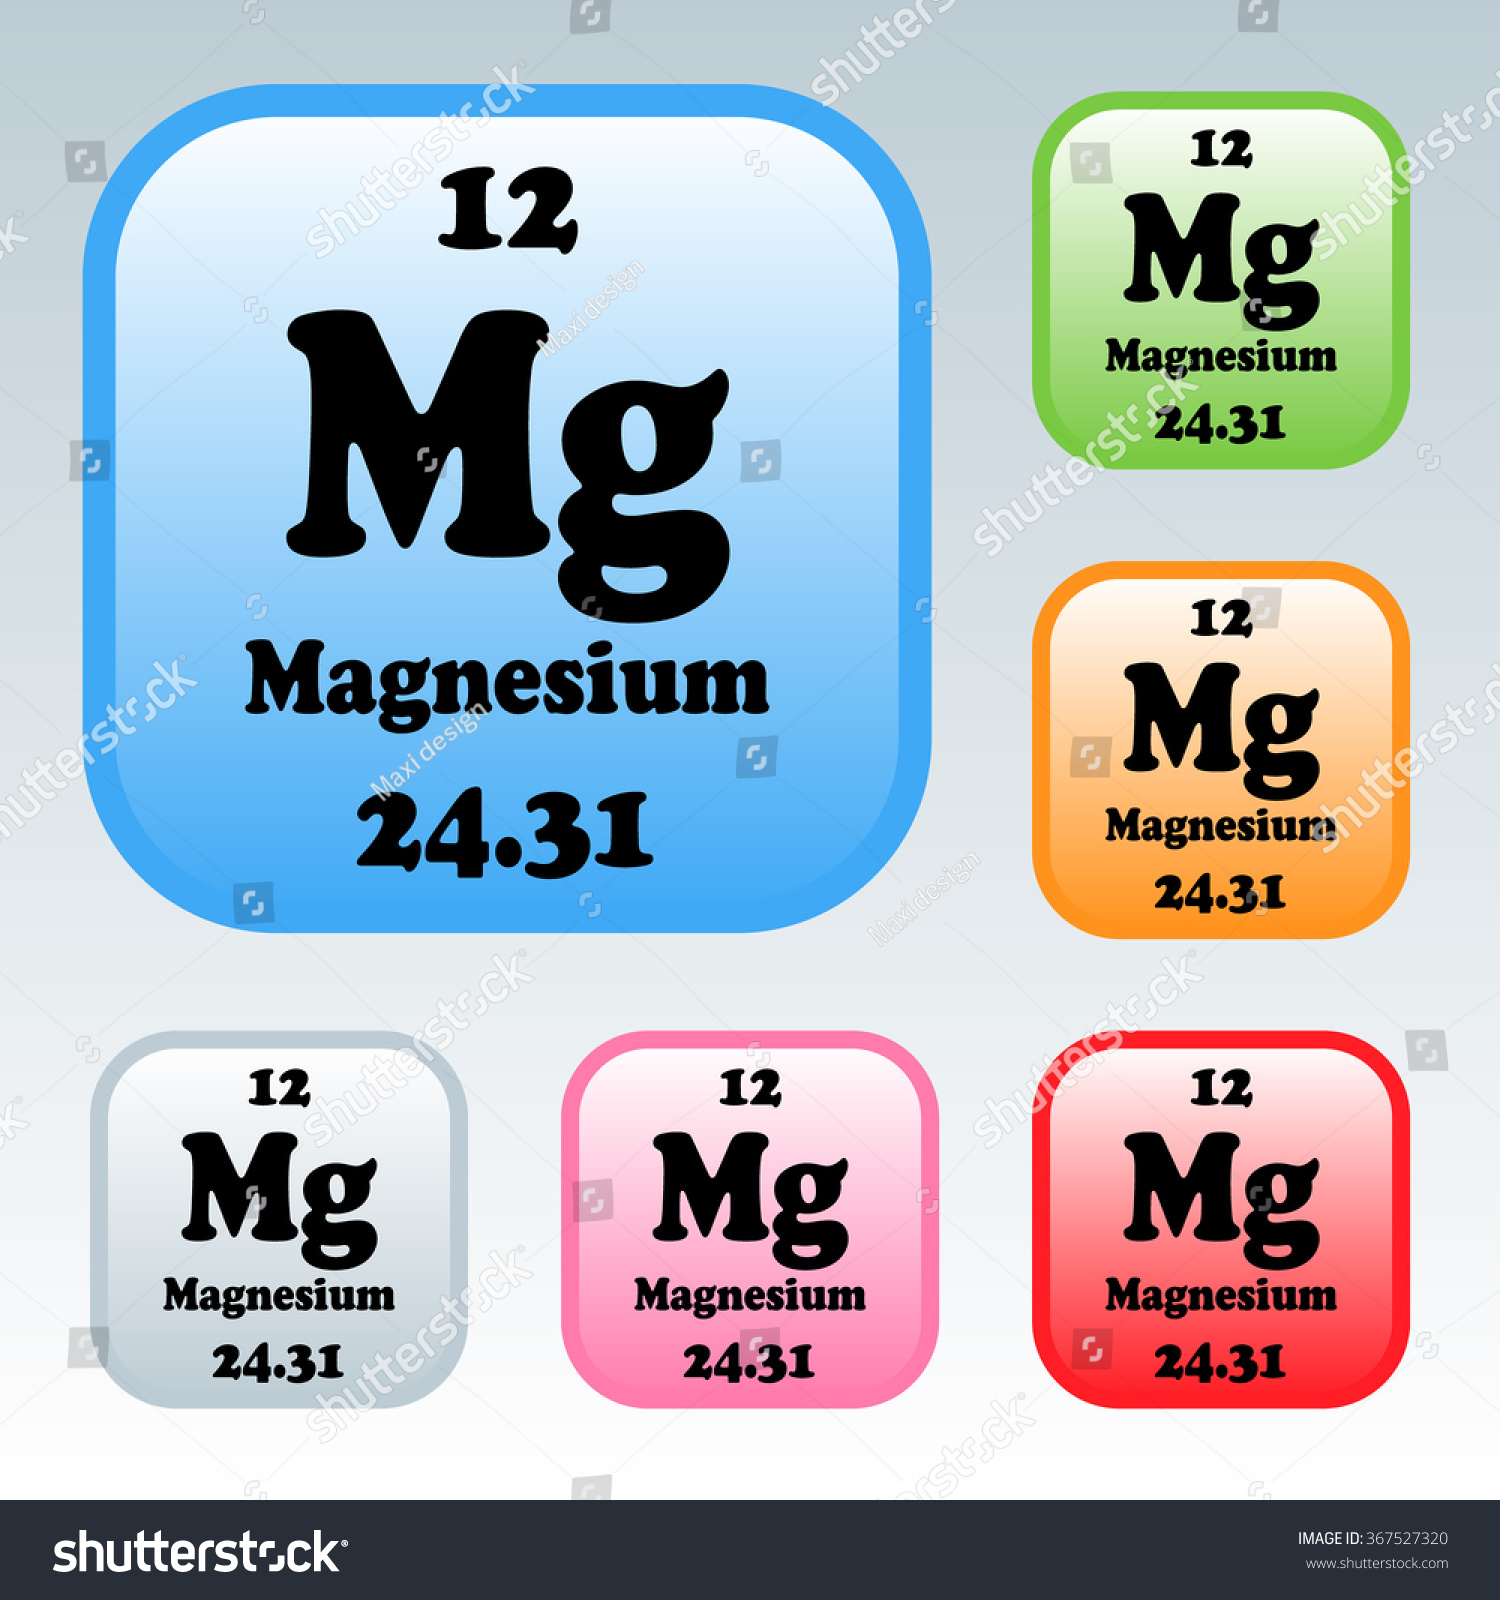 31 periodic table images periodic table images periodic table of elements magnesium gallery periodic table images periodic table of elements magnesium images periodic gamestrikefo Image collections